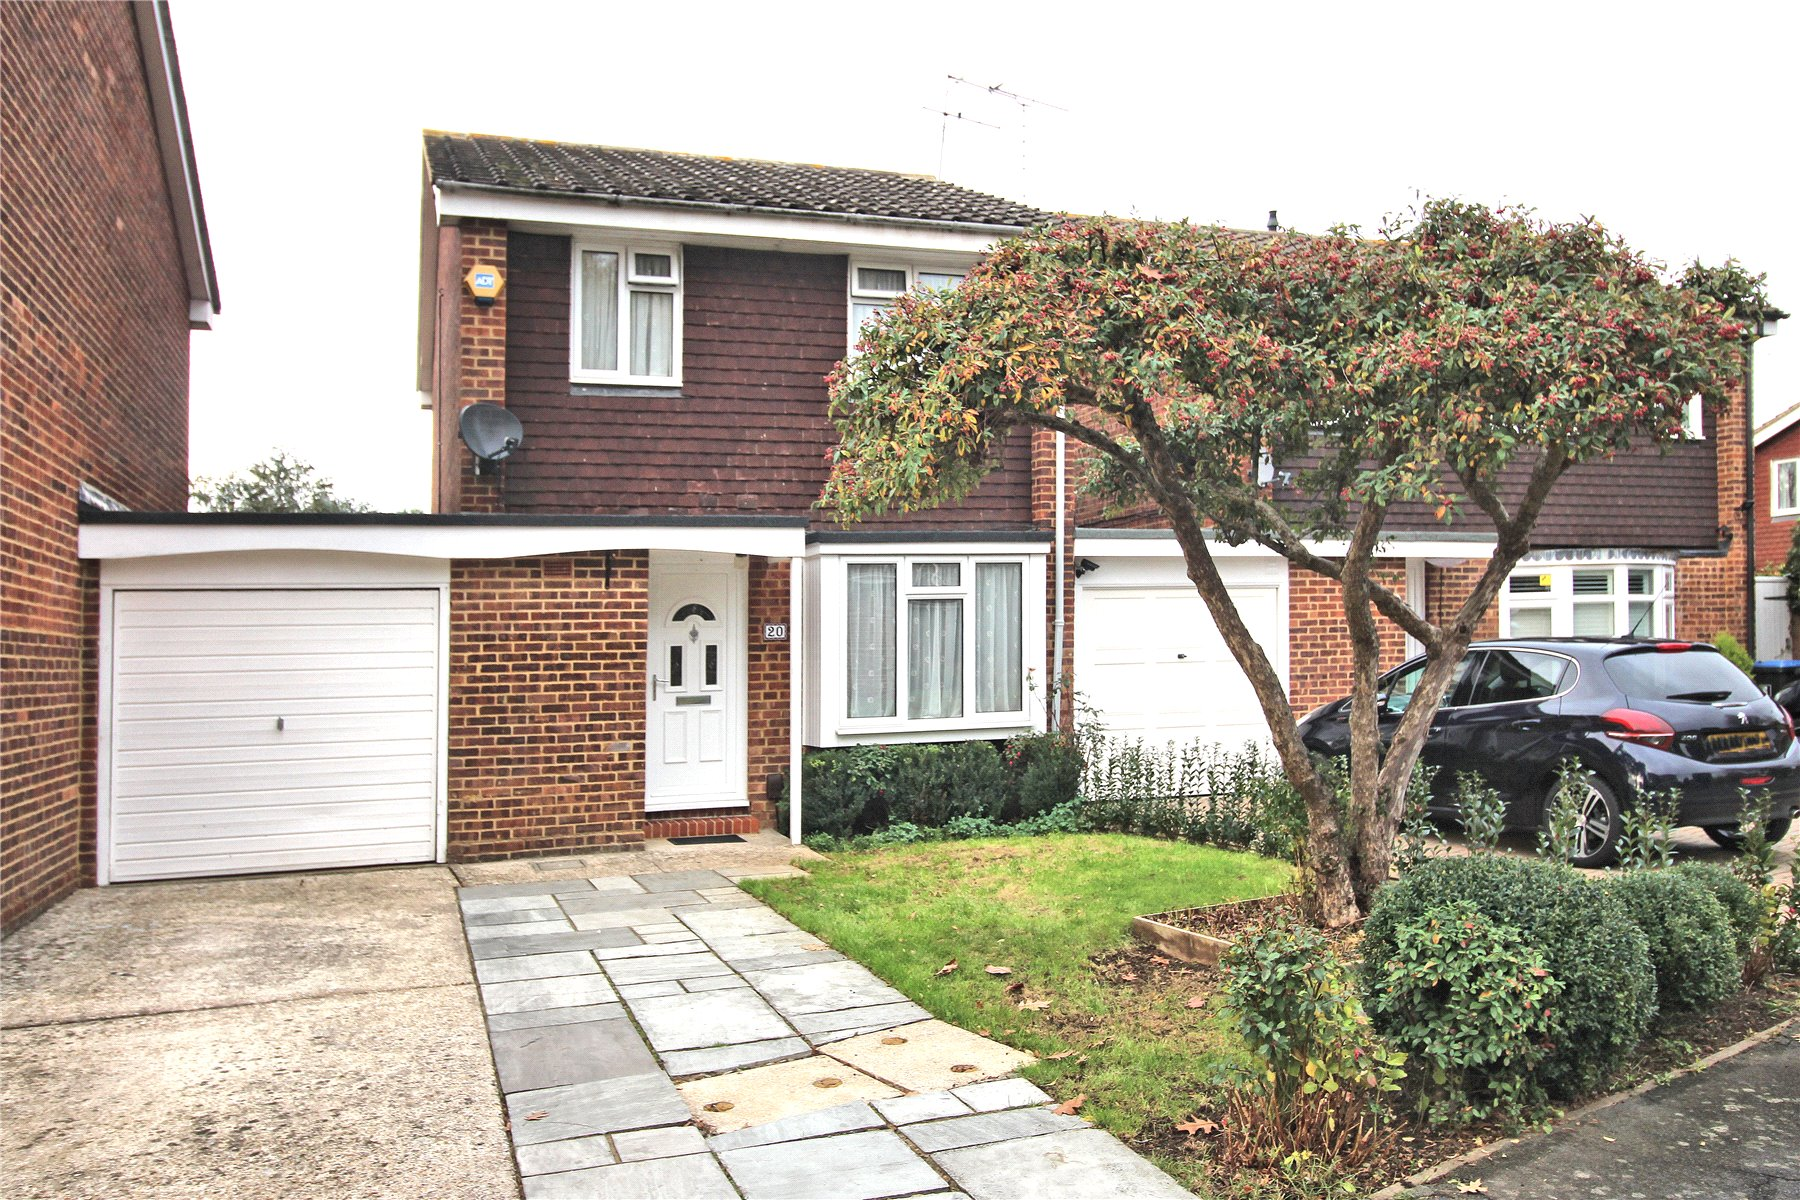 3 Bedrooms Link Detached House for sale in Muirfield Road, Woking, Surrey, GU21